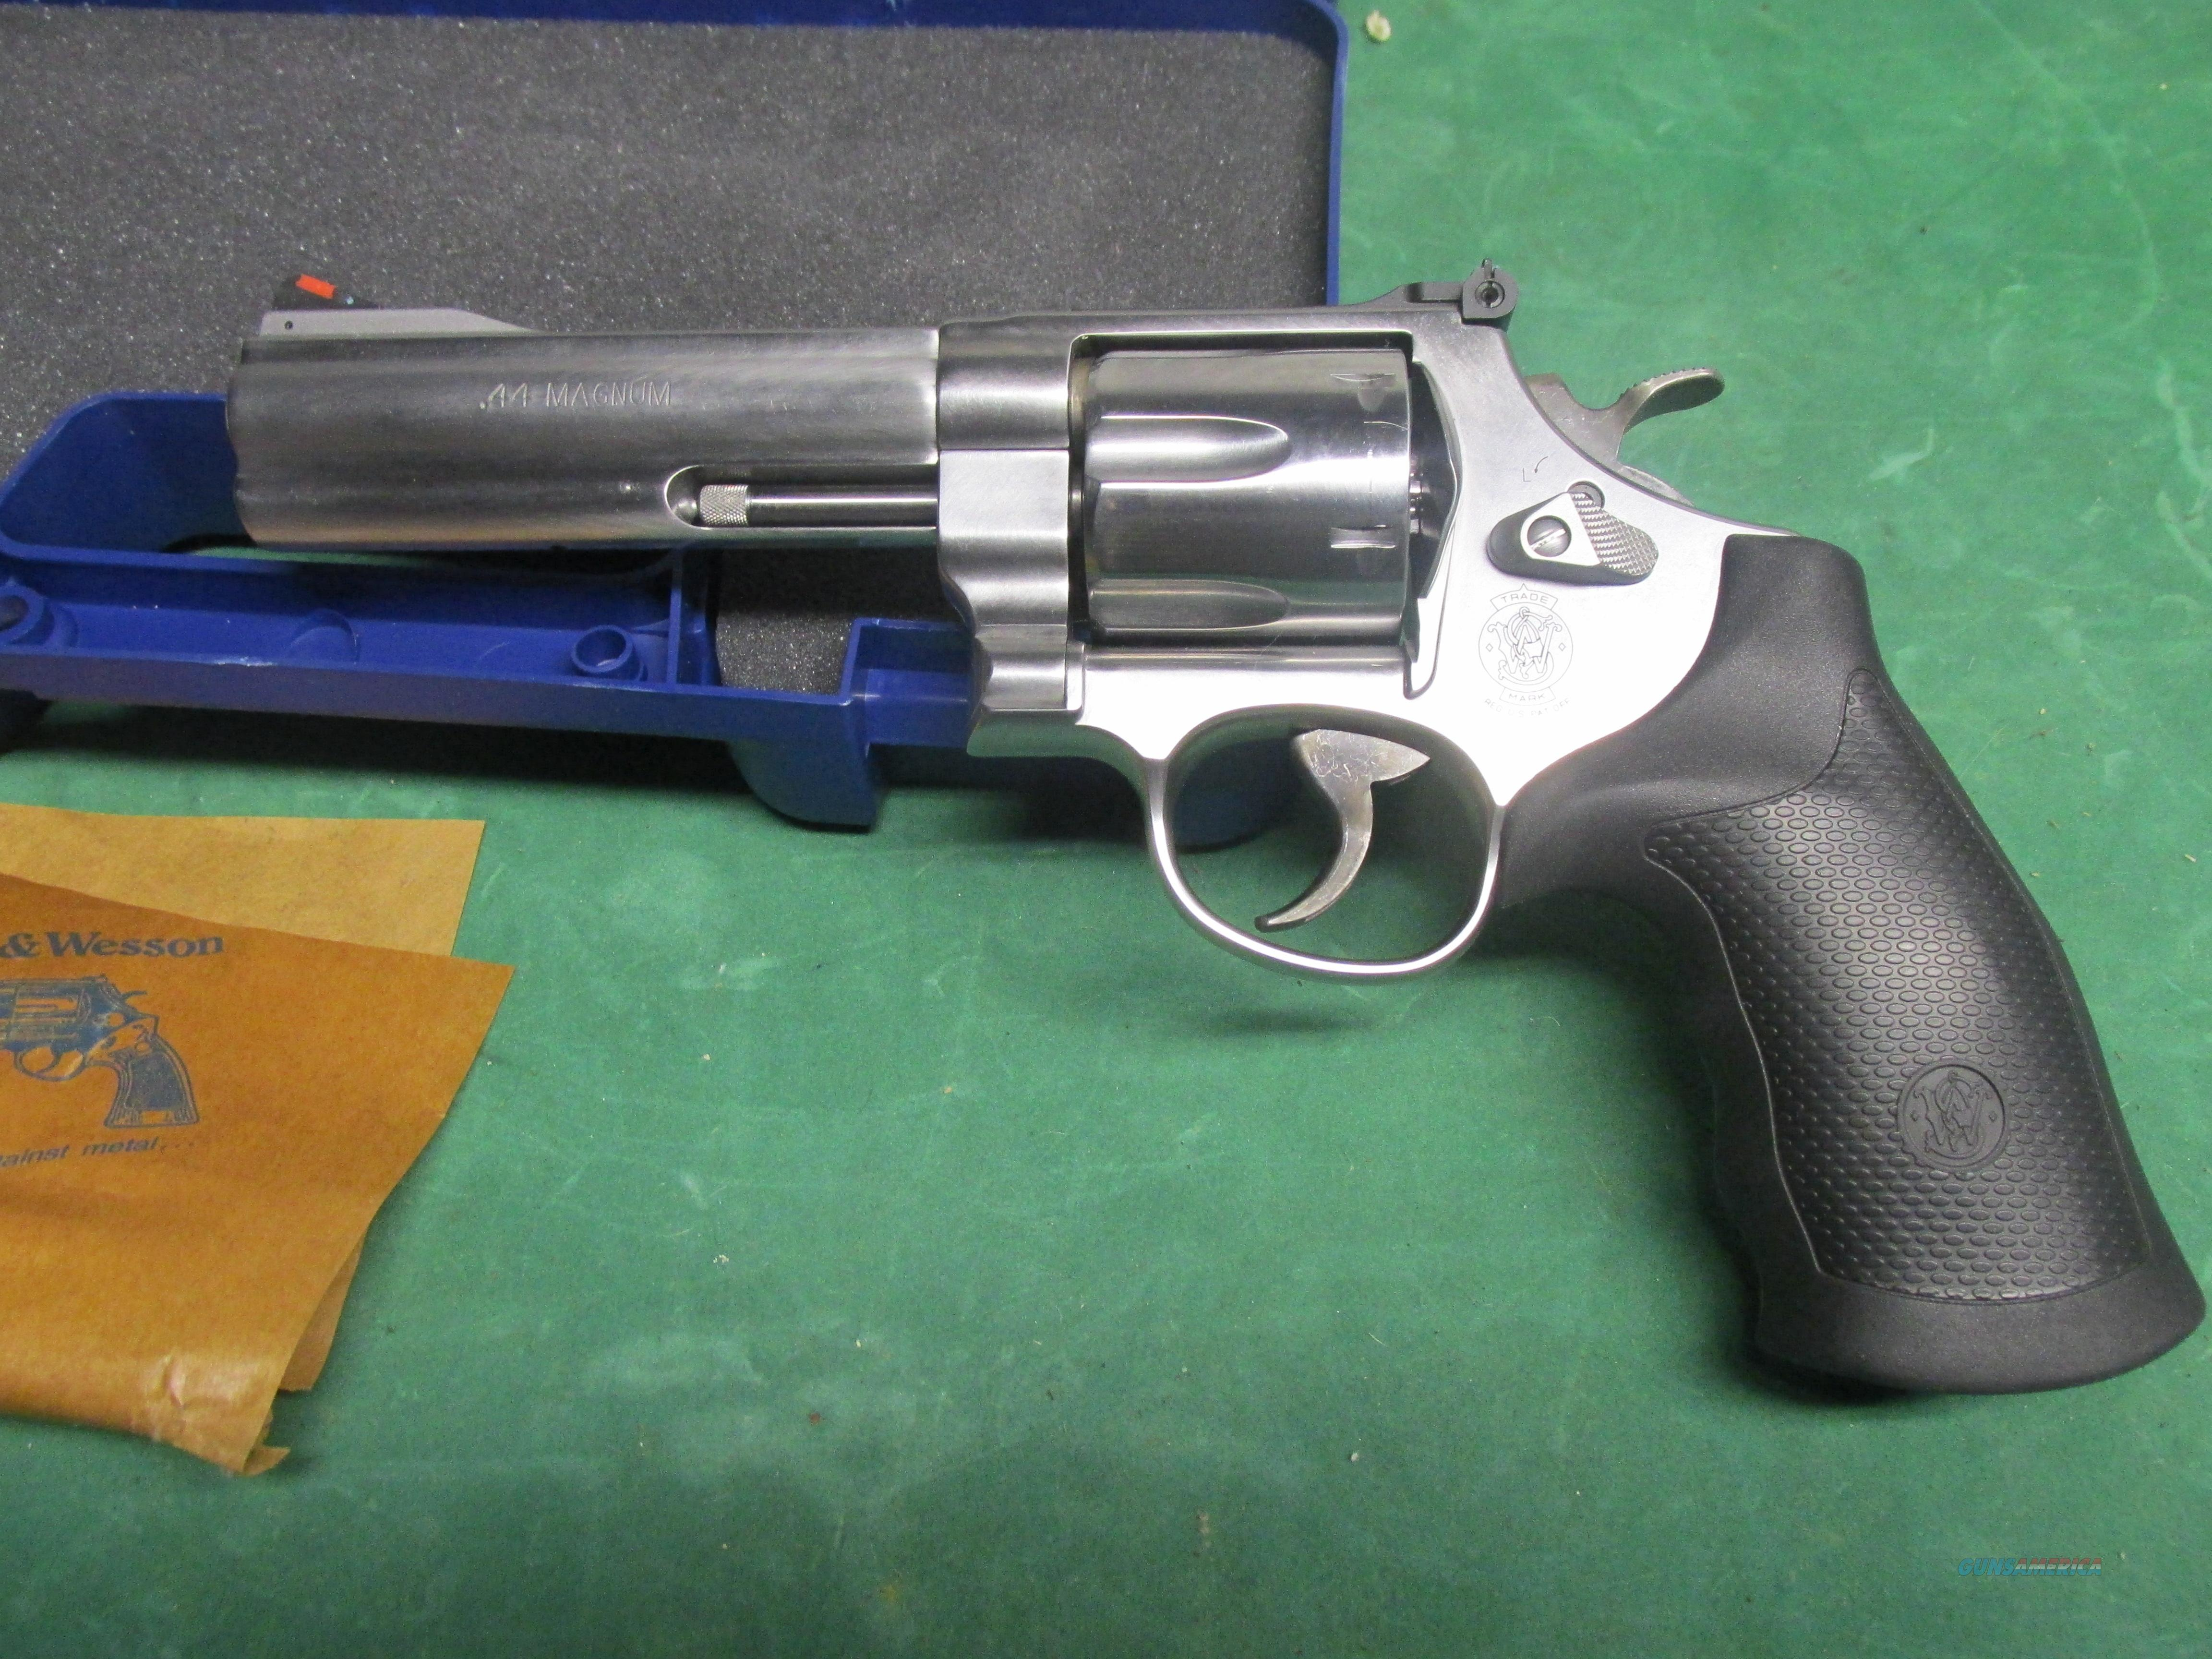 Smith And Wesson 629 Classic Related Keywords & Suggestions